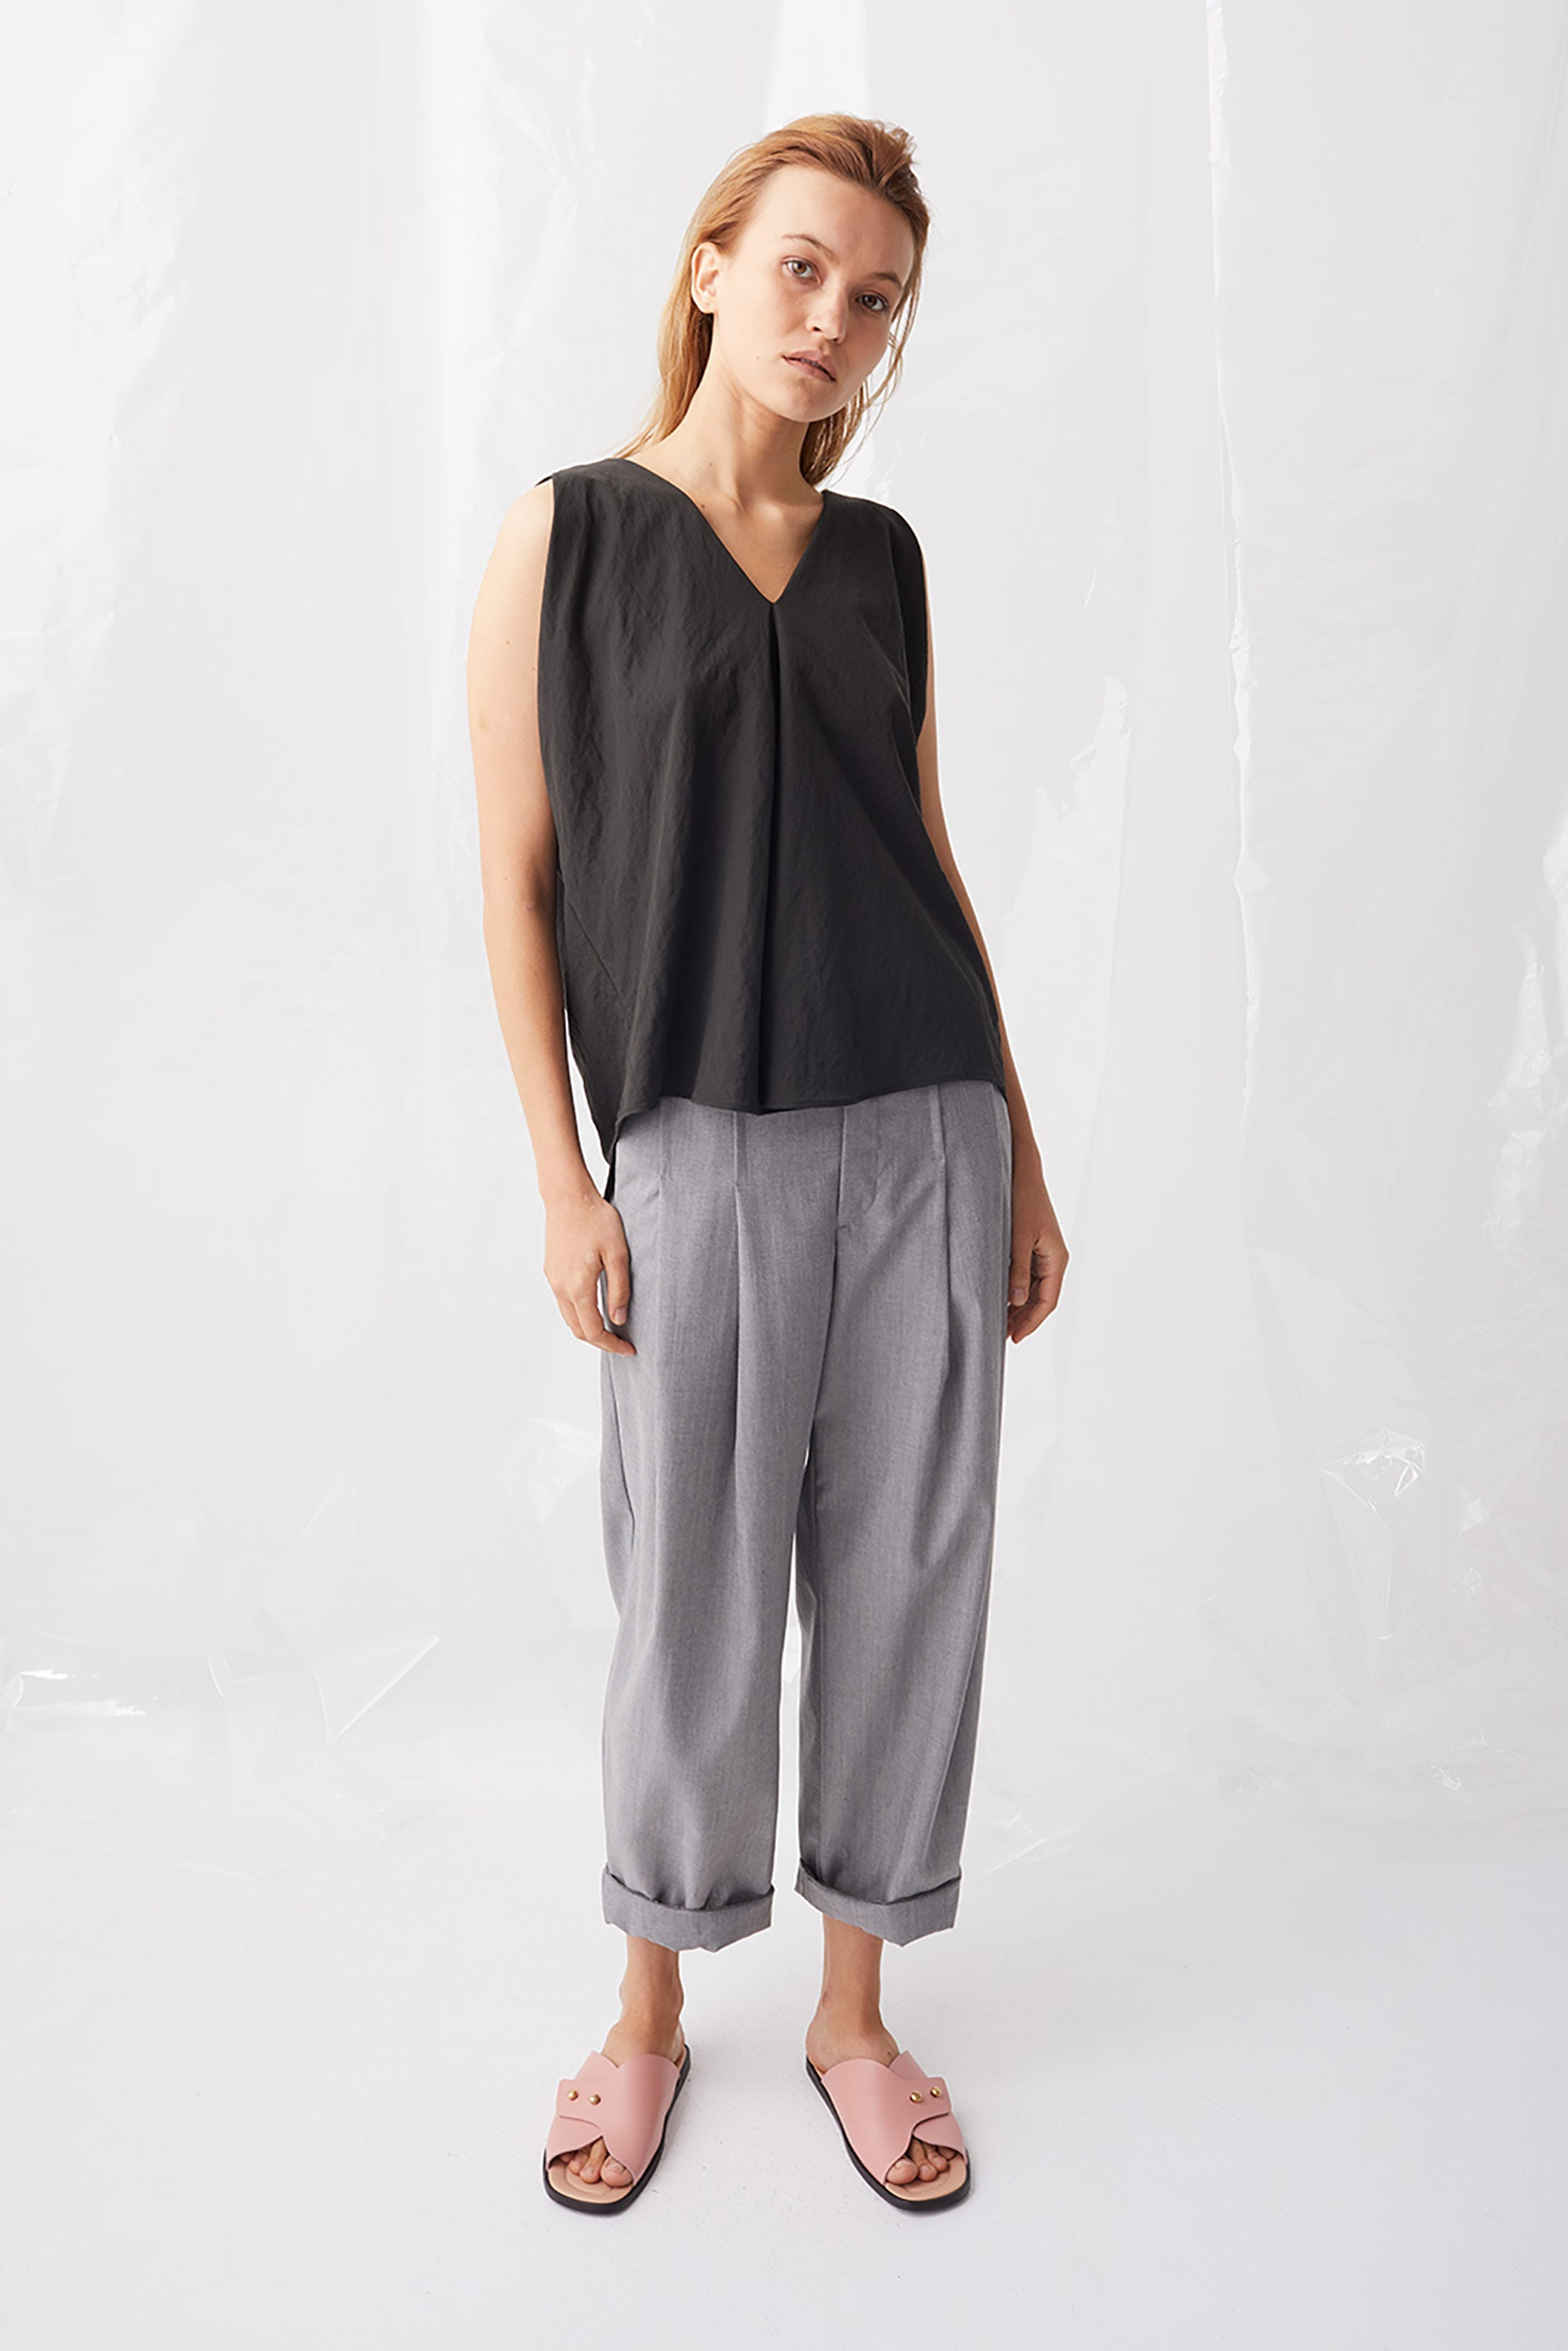 Ricochet NZ Fashion Designer Clothing Boutique SS18 Sapporo Pant Grey Chambray Rolled Hem Made in NZ